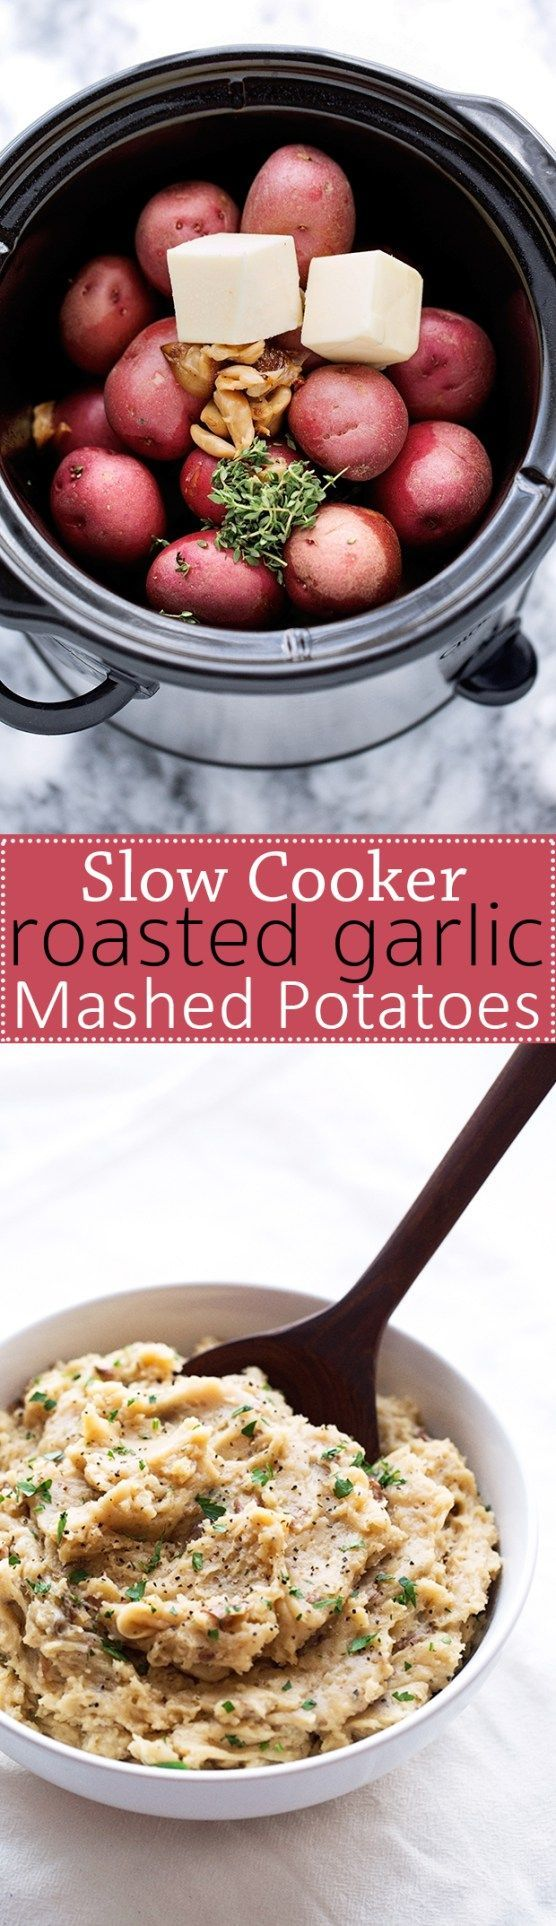 Roasted Garlic Mashed Potatoes - Learn how to make roasted garlic mashed potatoes in the slow cooker! Perfect for Thanksgiving! #slowcooker #mashedpotatoes #crockpot #roastedgarlic   http://Littlespicejar.com